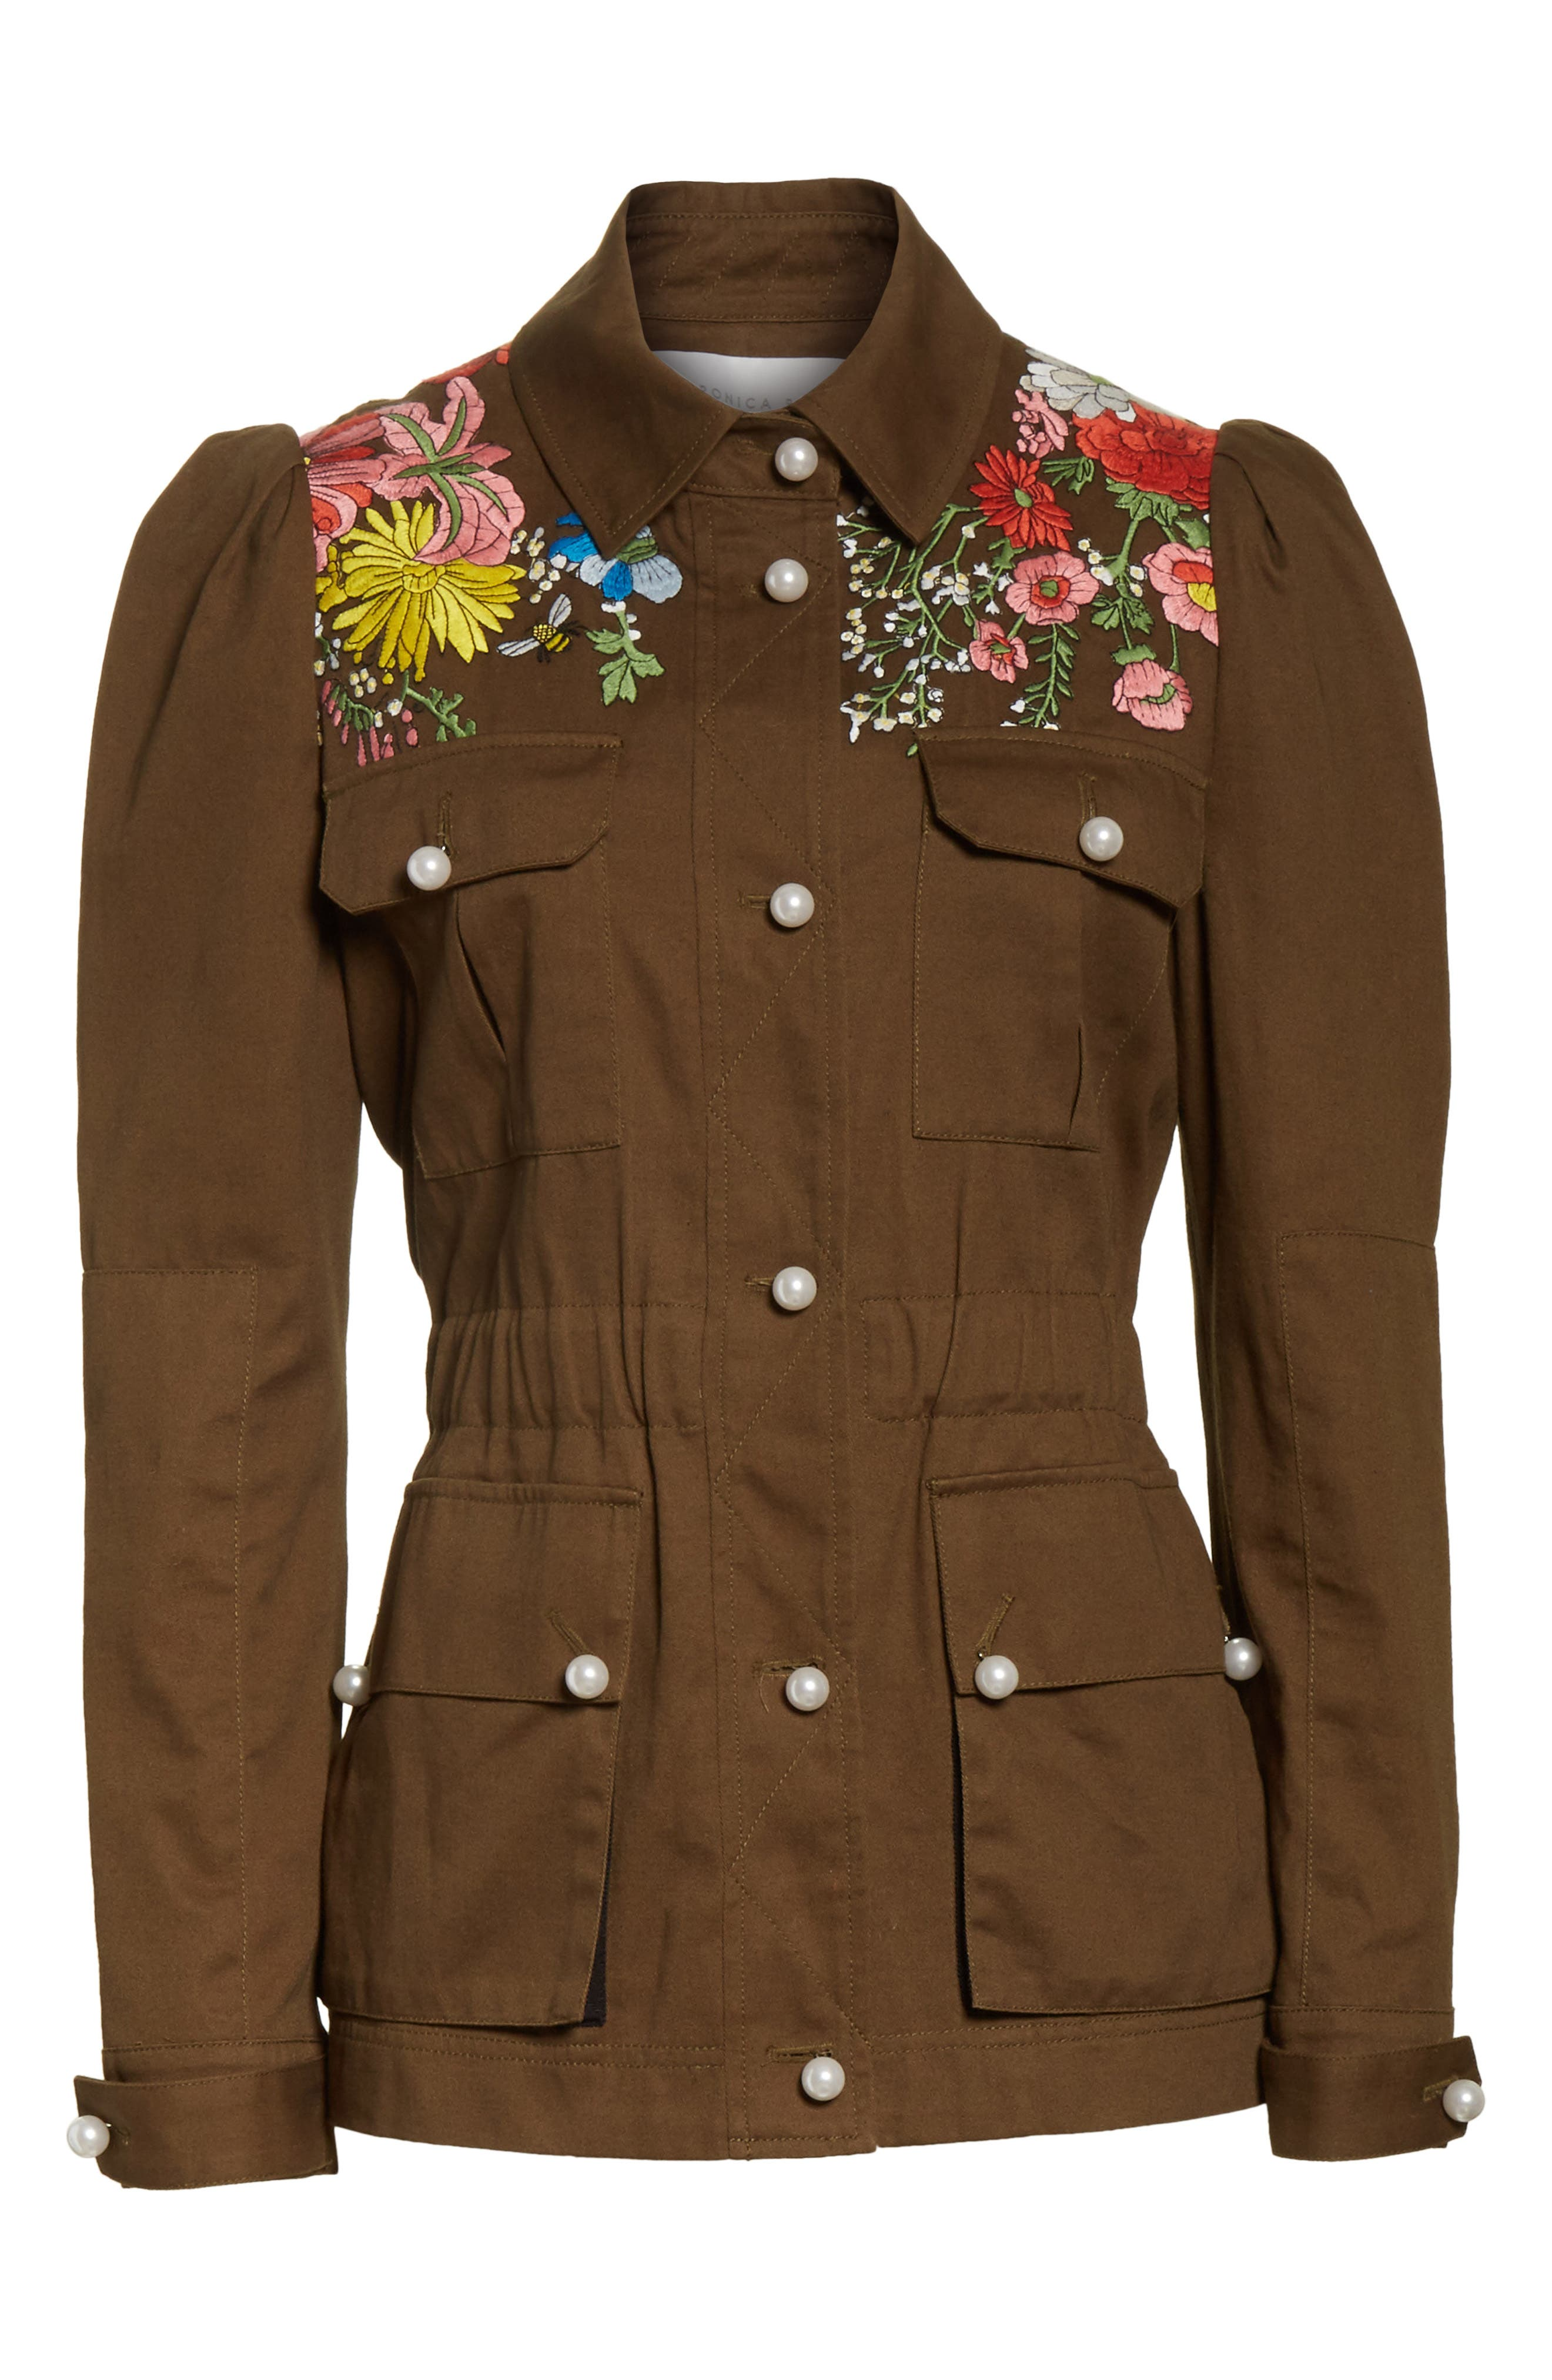 Huxley Floral Embroidered Safari Jacket,                             Alternate thumbnail 6, color,                             Army